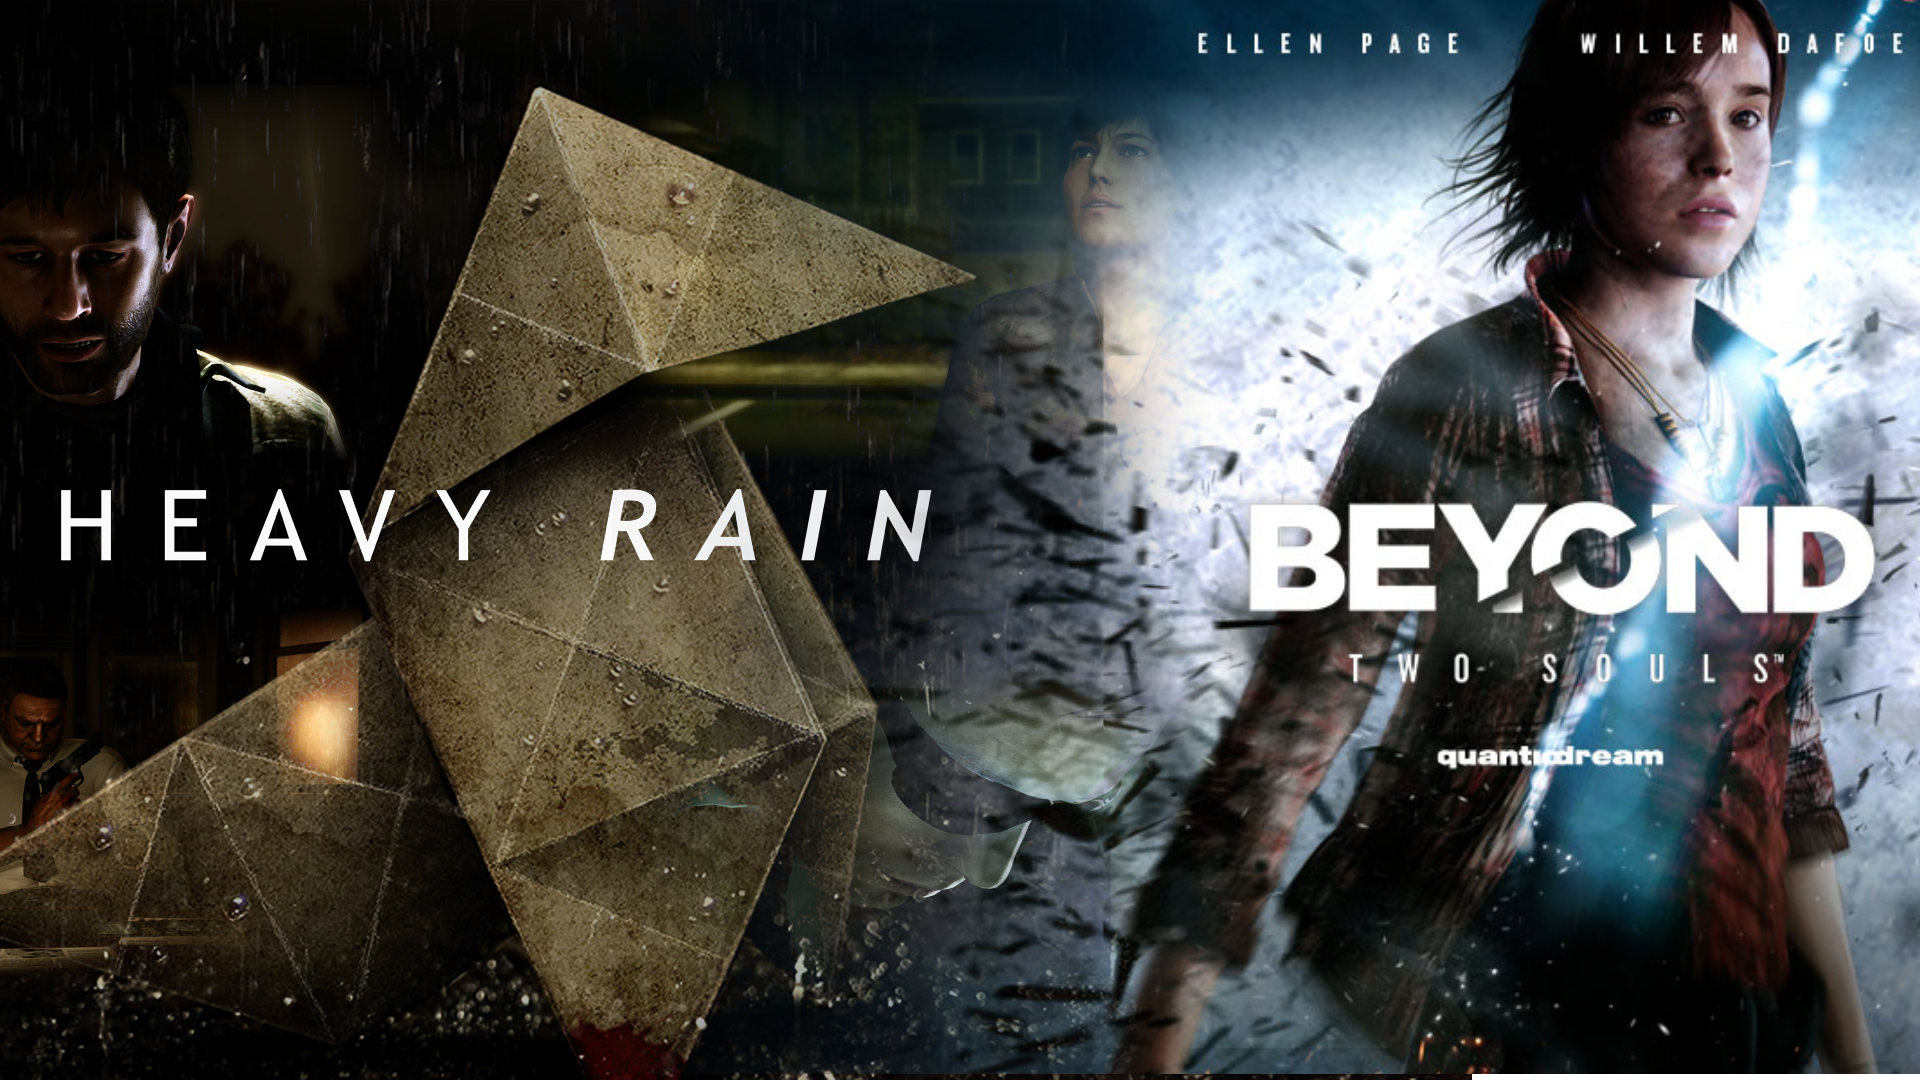 Heavy Rain & Beyond: Due Anime Collection